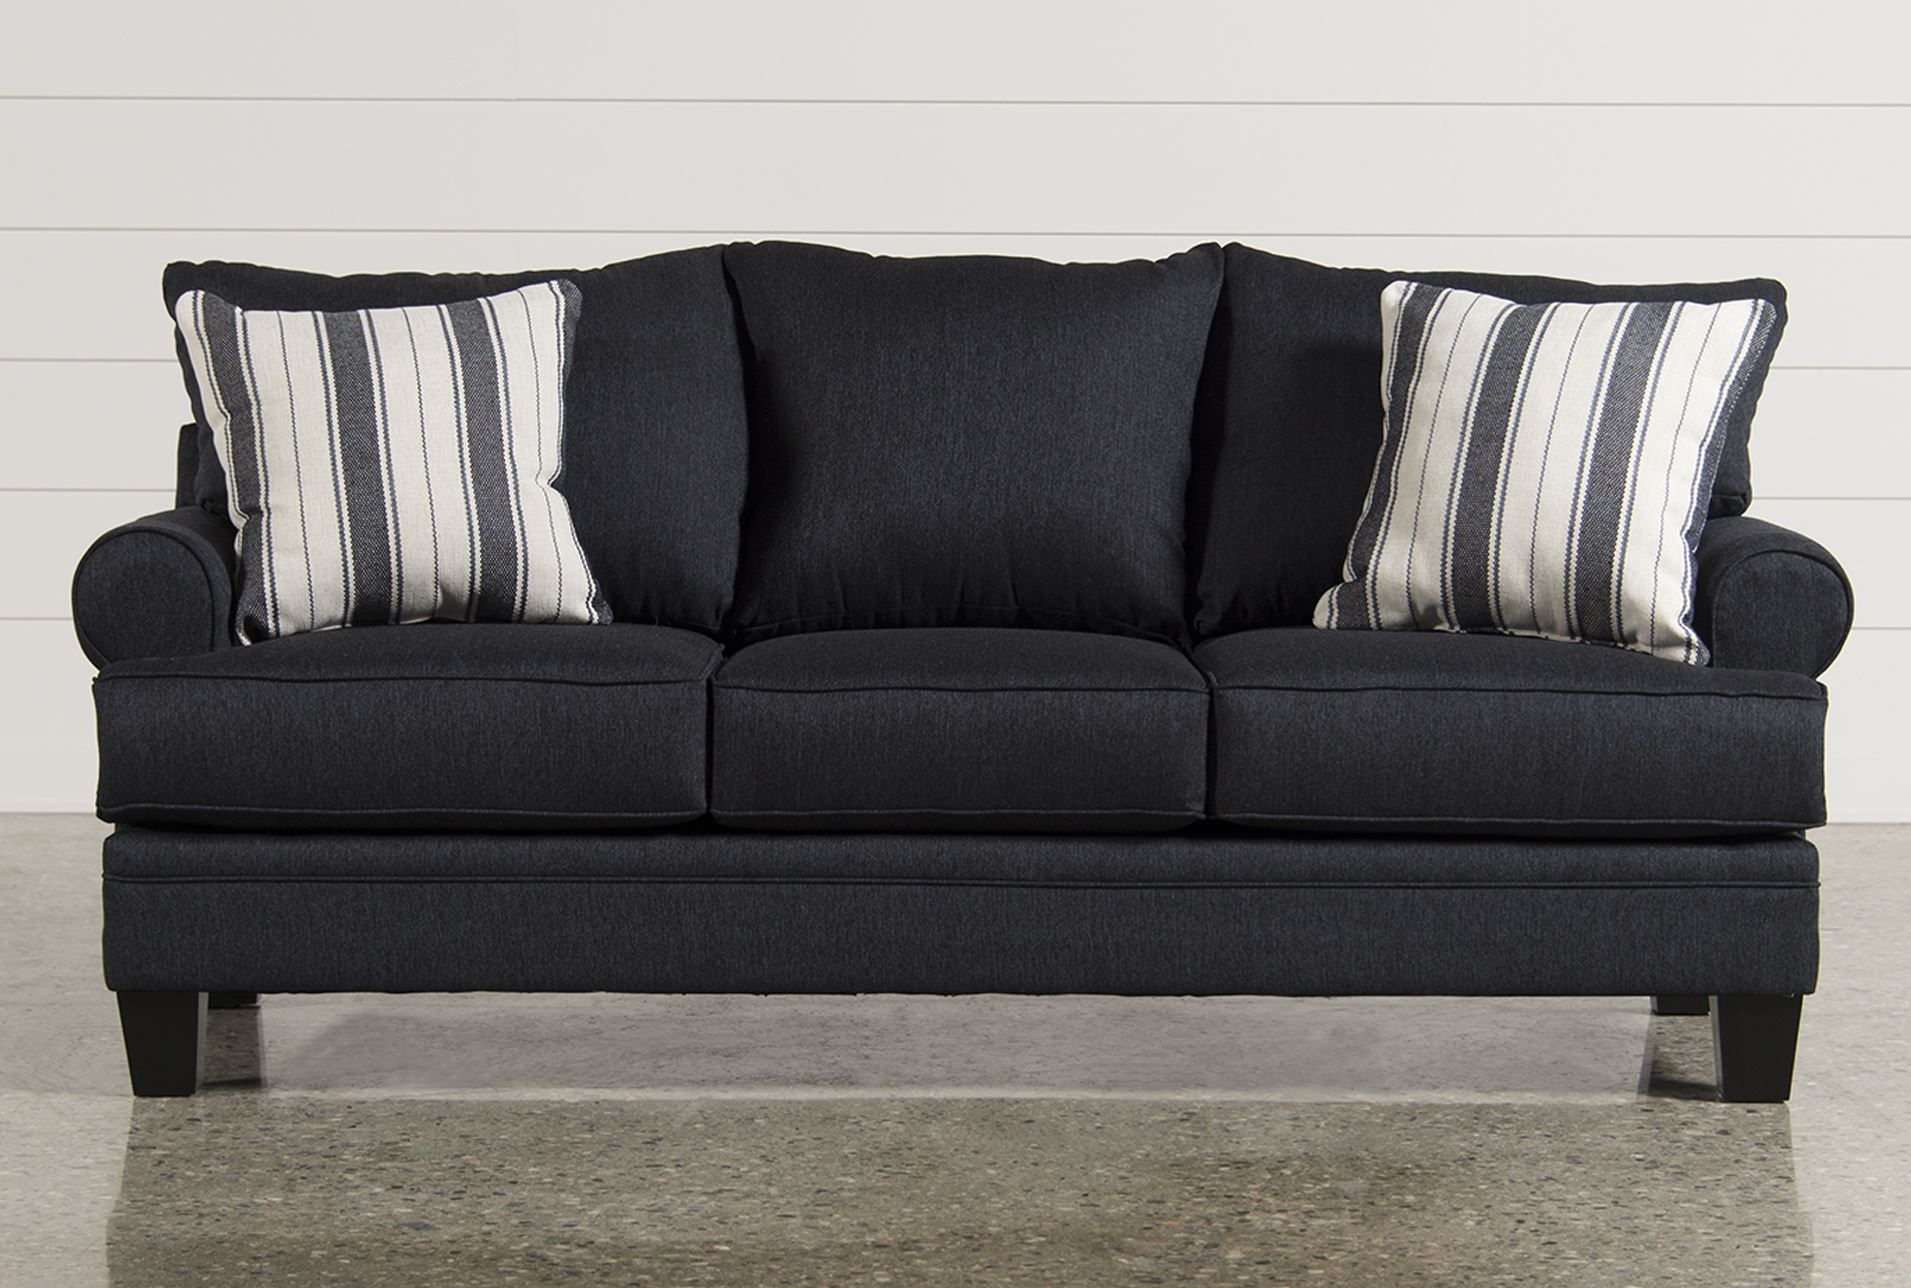 Callie Sofa | Furniture | Pinterest | Living Spaces, Kitchen Living Pertaining To Callie Sofa Chairs (Image 10 of 25)